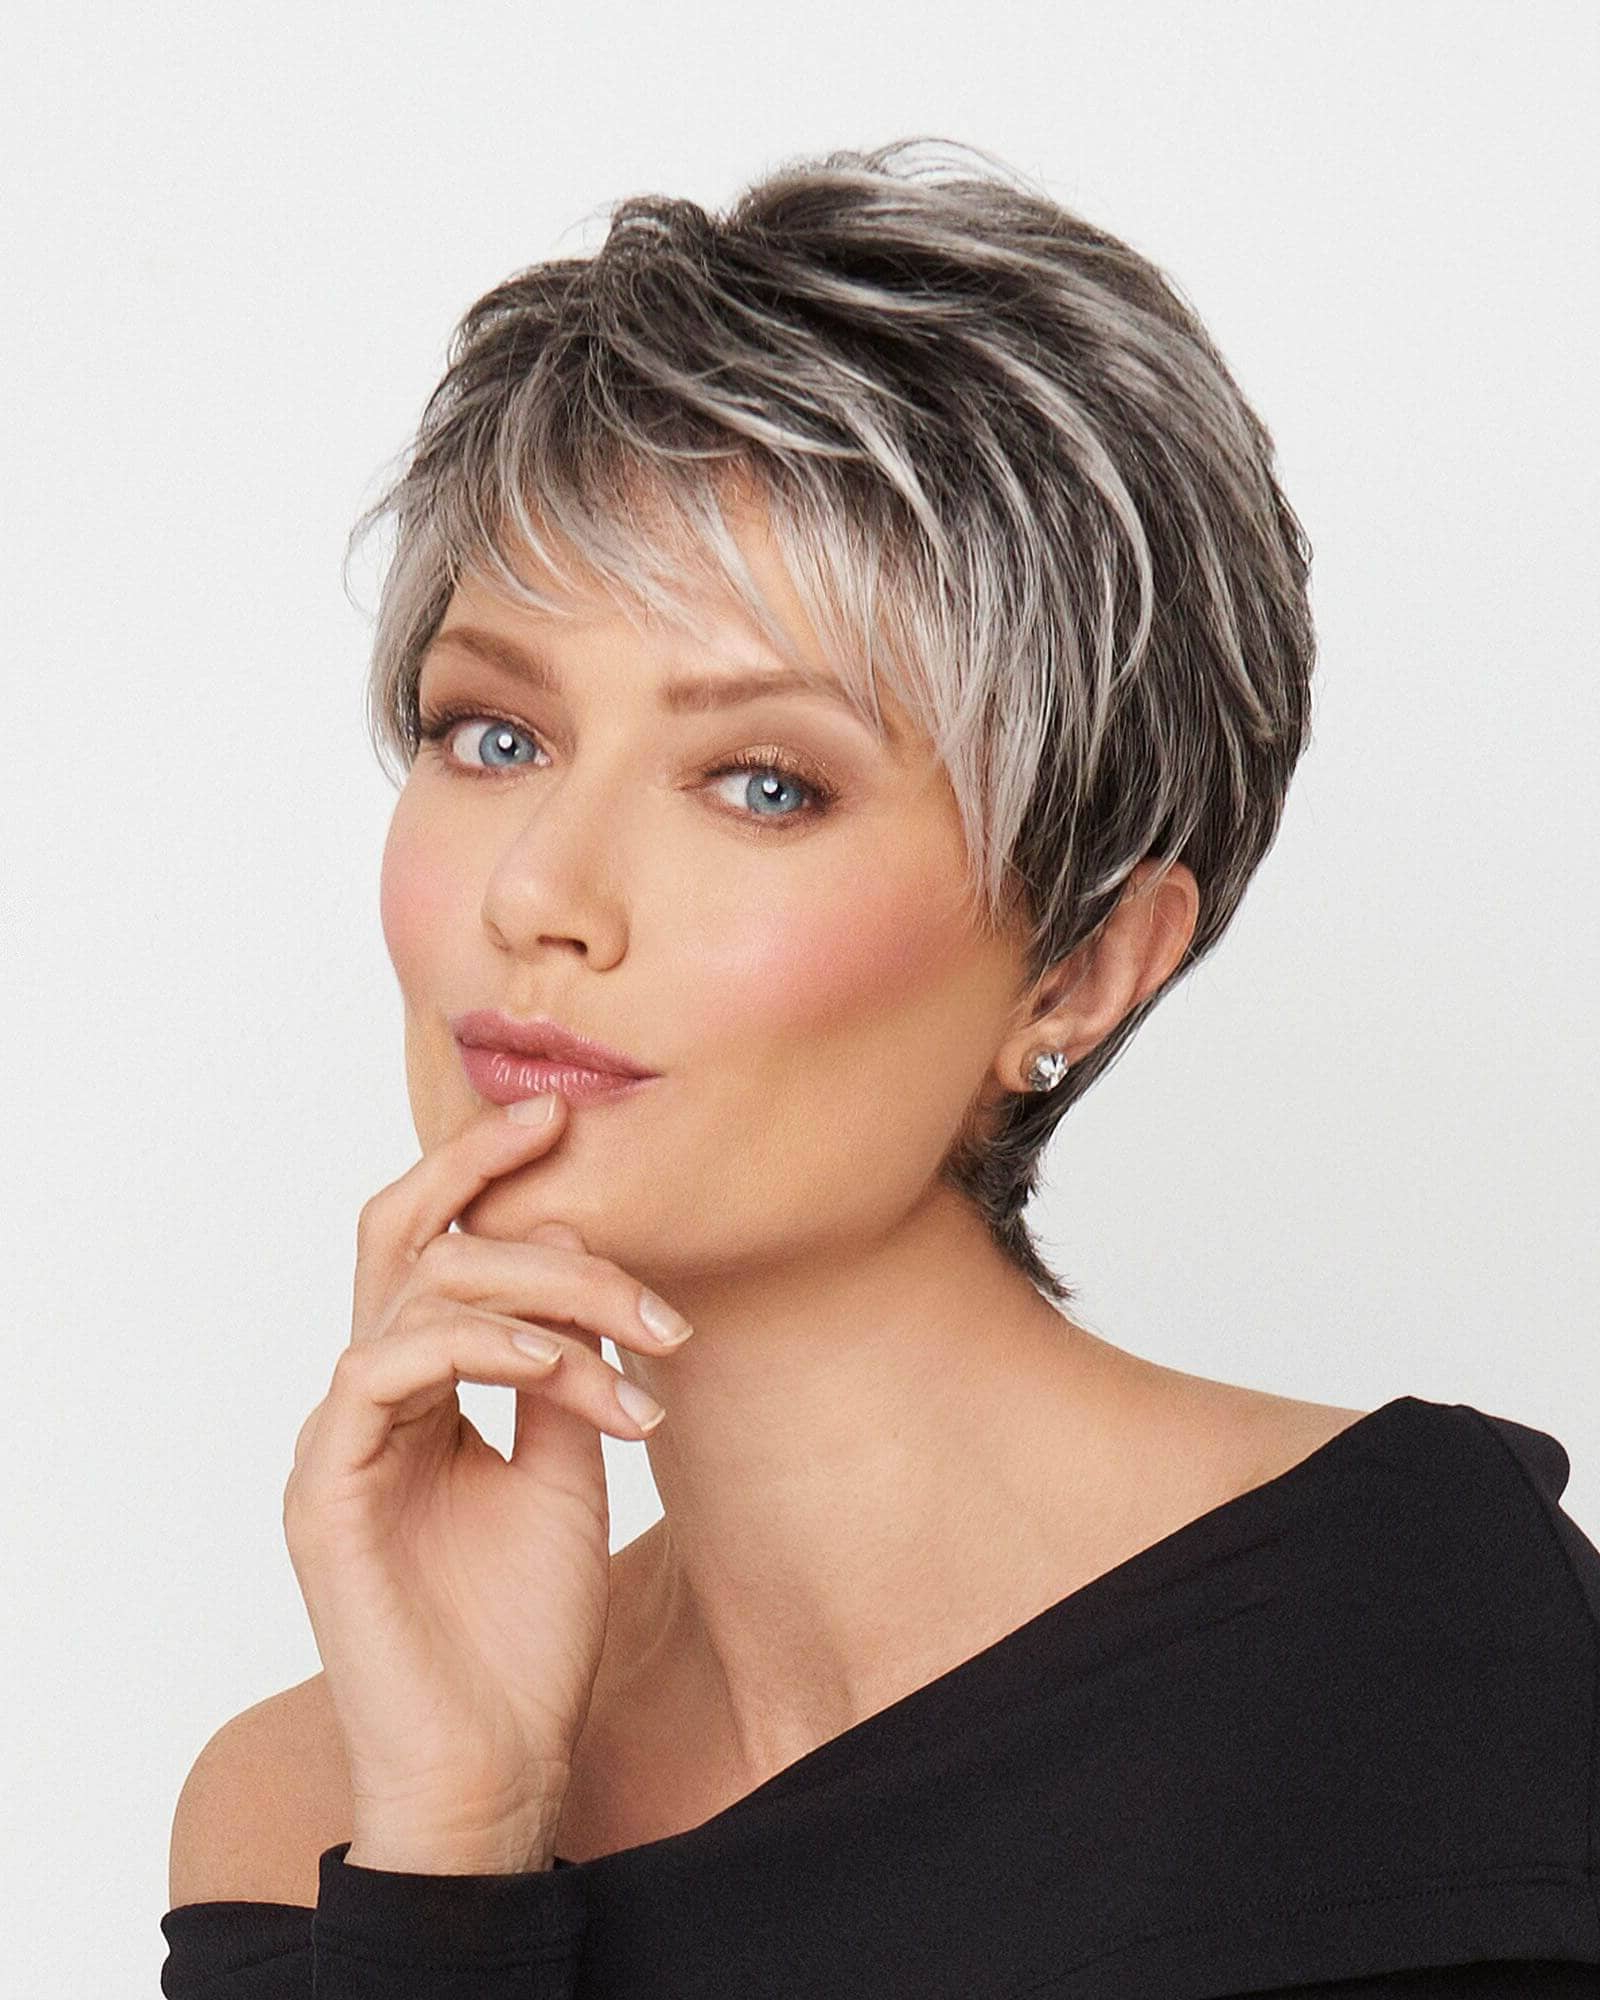 50 Pixie Haircuts You'll See Trending In 2018 Pertaining To Sassy Pixie Hairstyles (View 5 of 20)